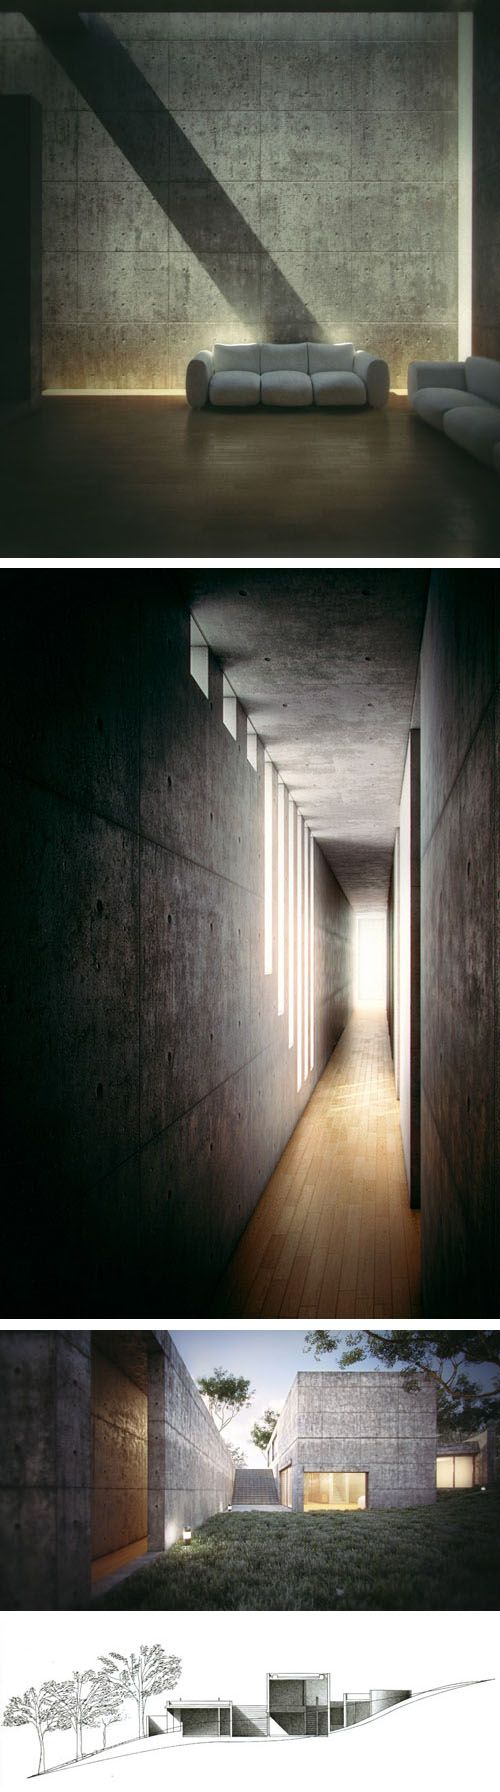 Koshino House by Tadao Ando